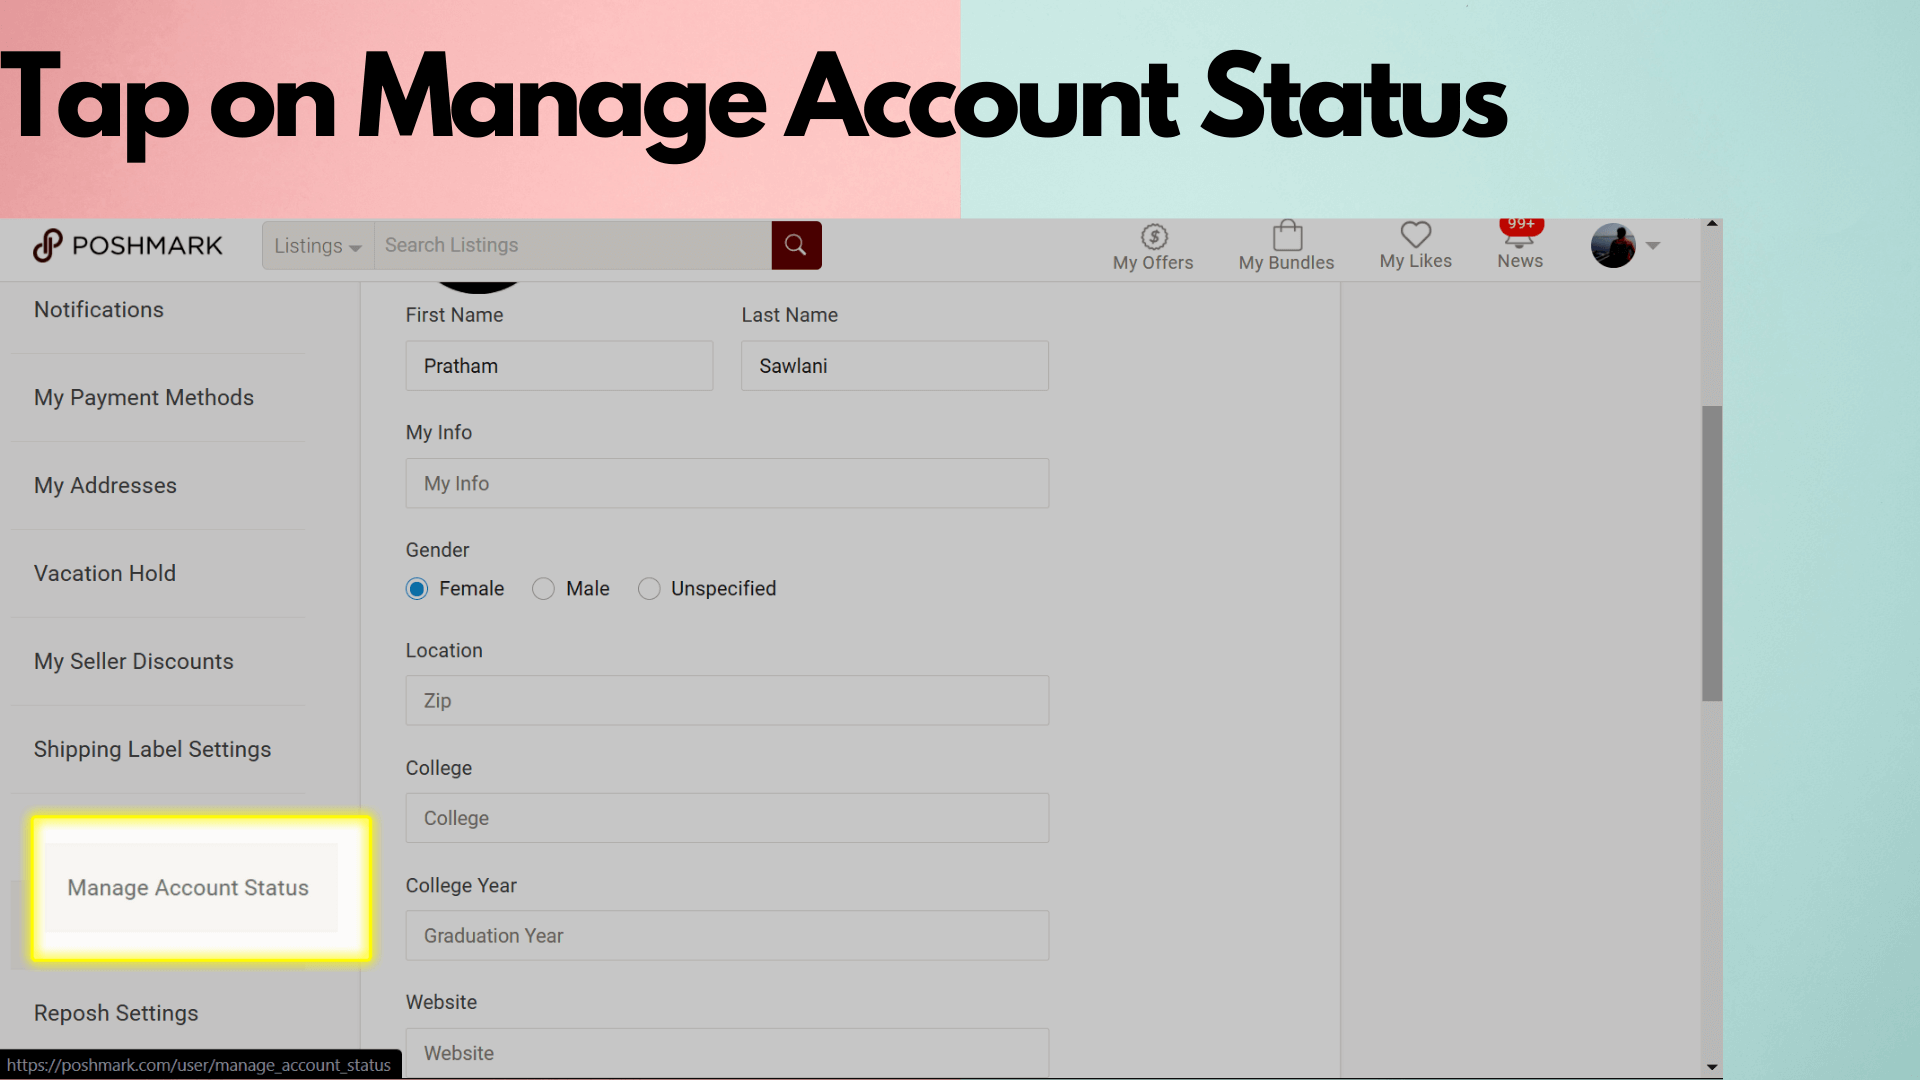 Step 3 Image Tap on manage account status image